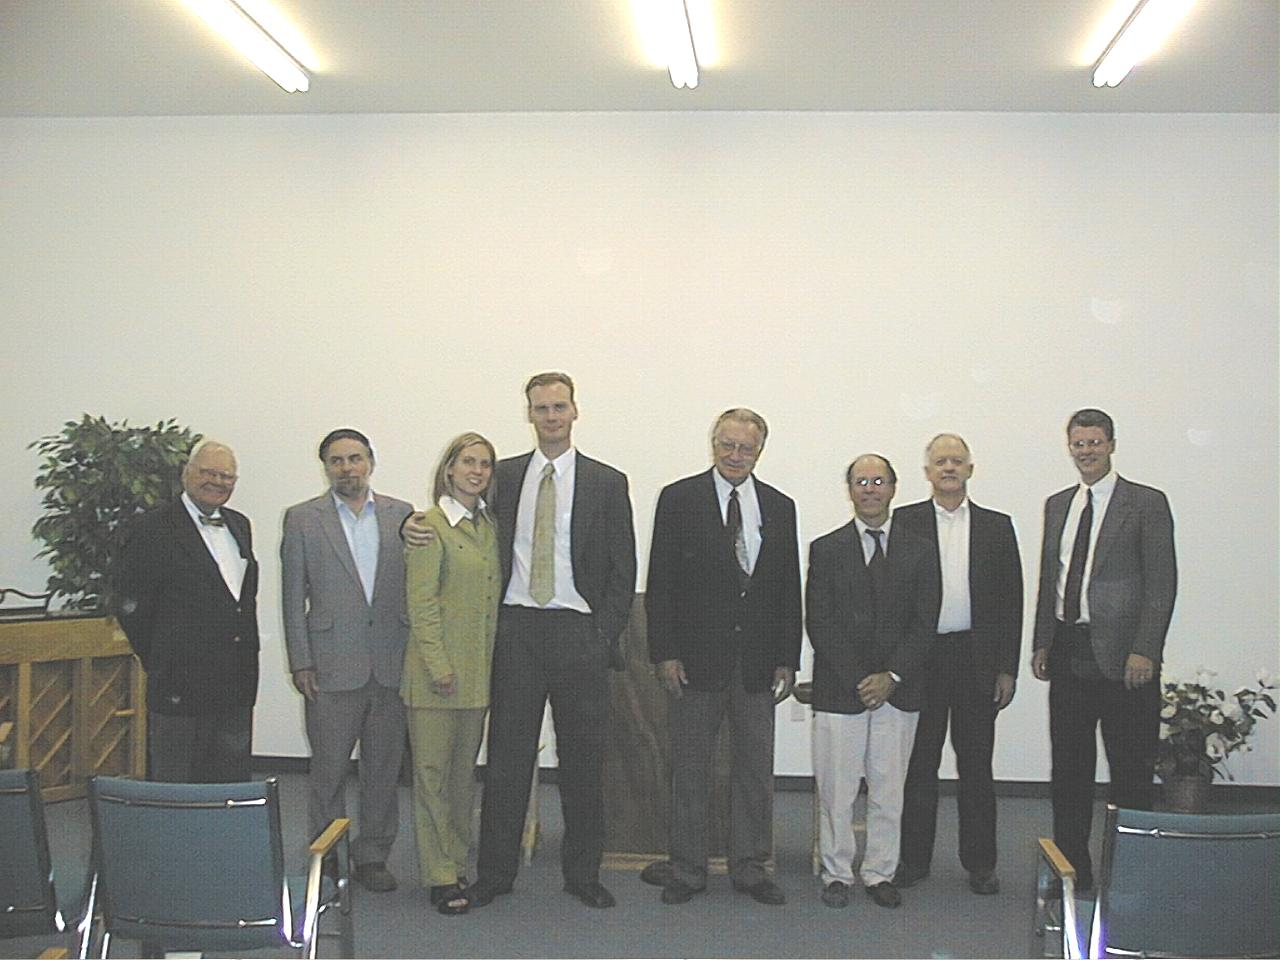 Participants.jpg - Participants in the service (Al Edwards, Bruce Long, Rebecca and Martin Emmrich, Richard Venema, Dr. Bob Martin, T.C. Wilson, and Jack Bradley), July 27, 2003